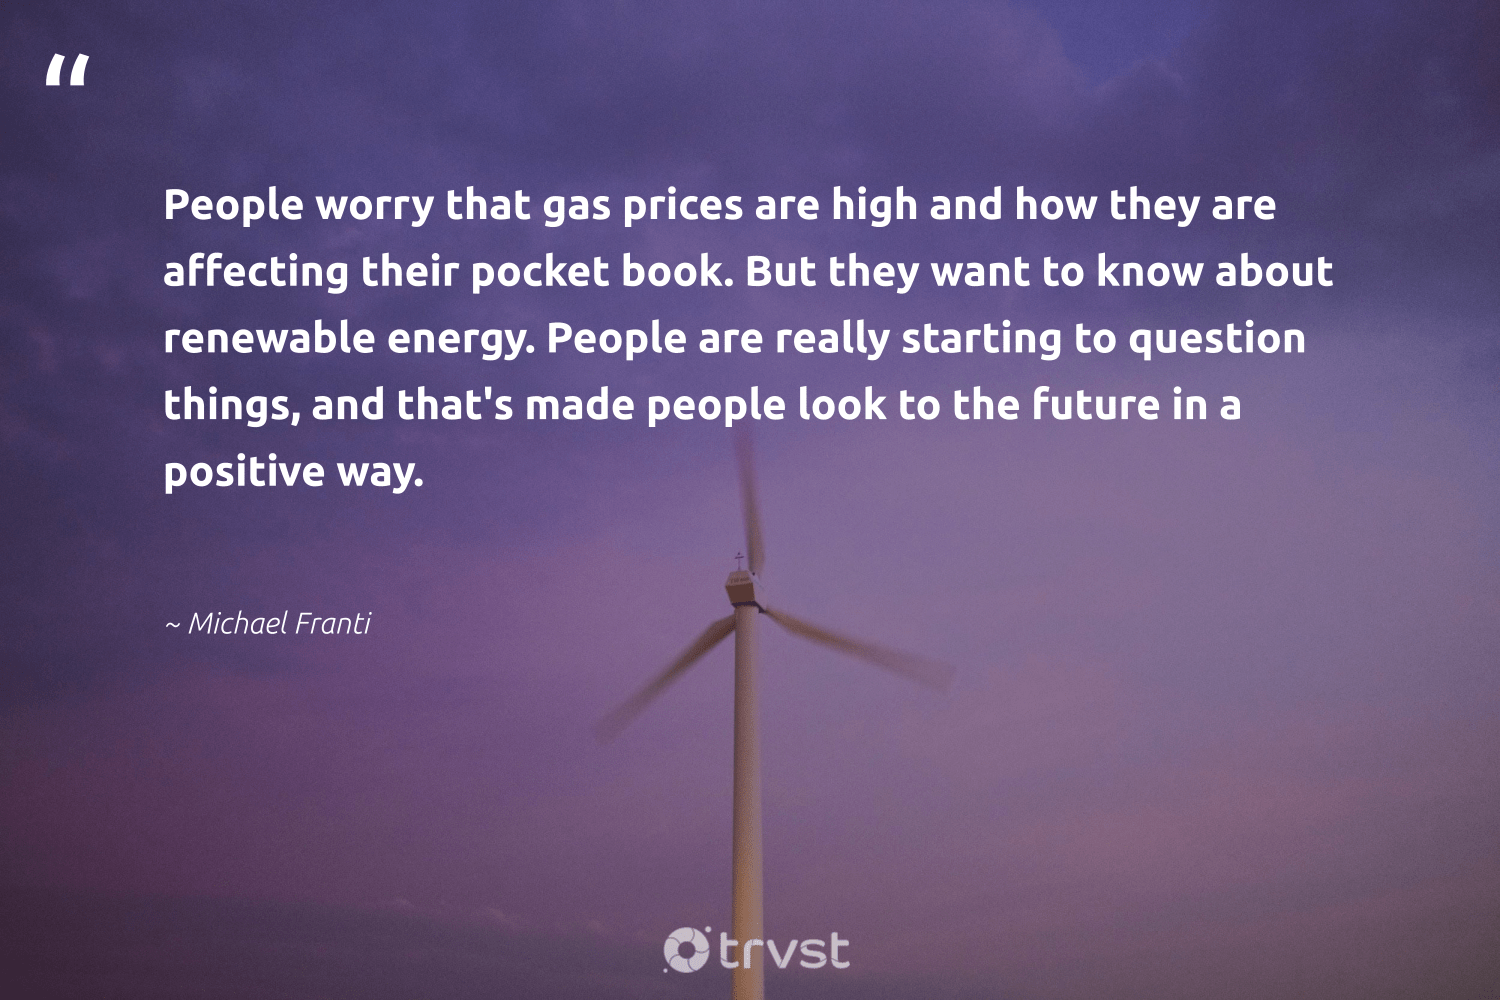 """""""People worry that gas prices are high and how they are affecting their pocket book. But they want to know about renewable energy. People are really starting to question things, and that's made people look to the future in a positive way.""""  - Michael Franti #trvst #quotes #renewableenergy #energy #renewable #gas #100percentclean #lowcarbon #environmentalist #parisagreement #planetearthfirst #cleanenergy"""